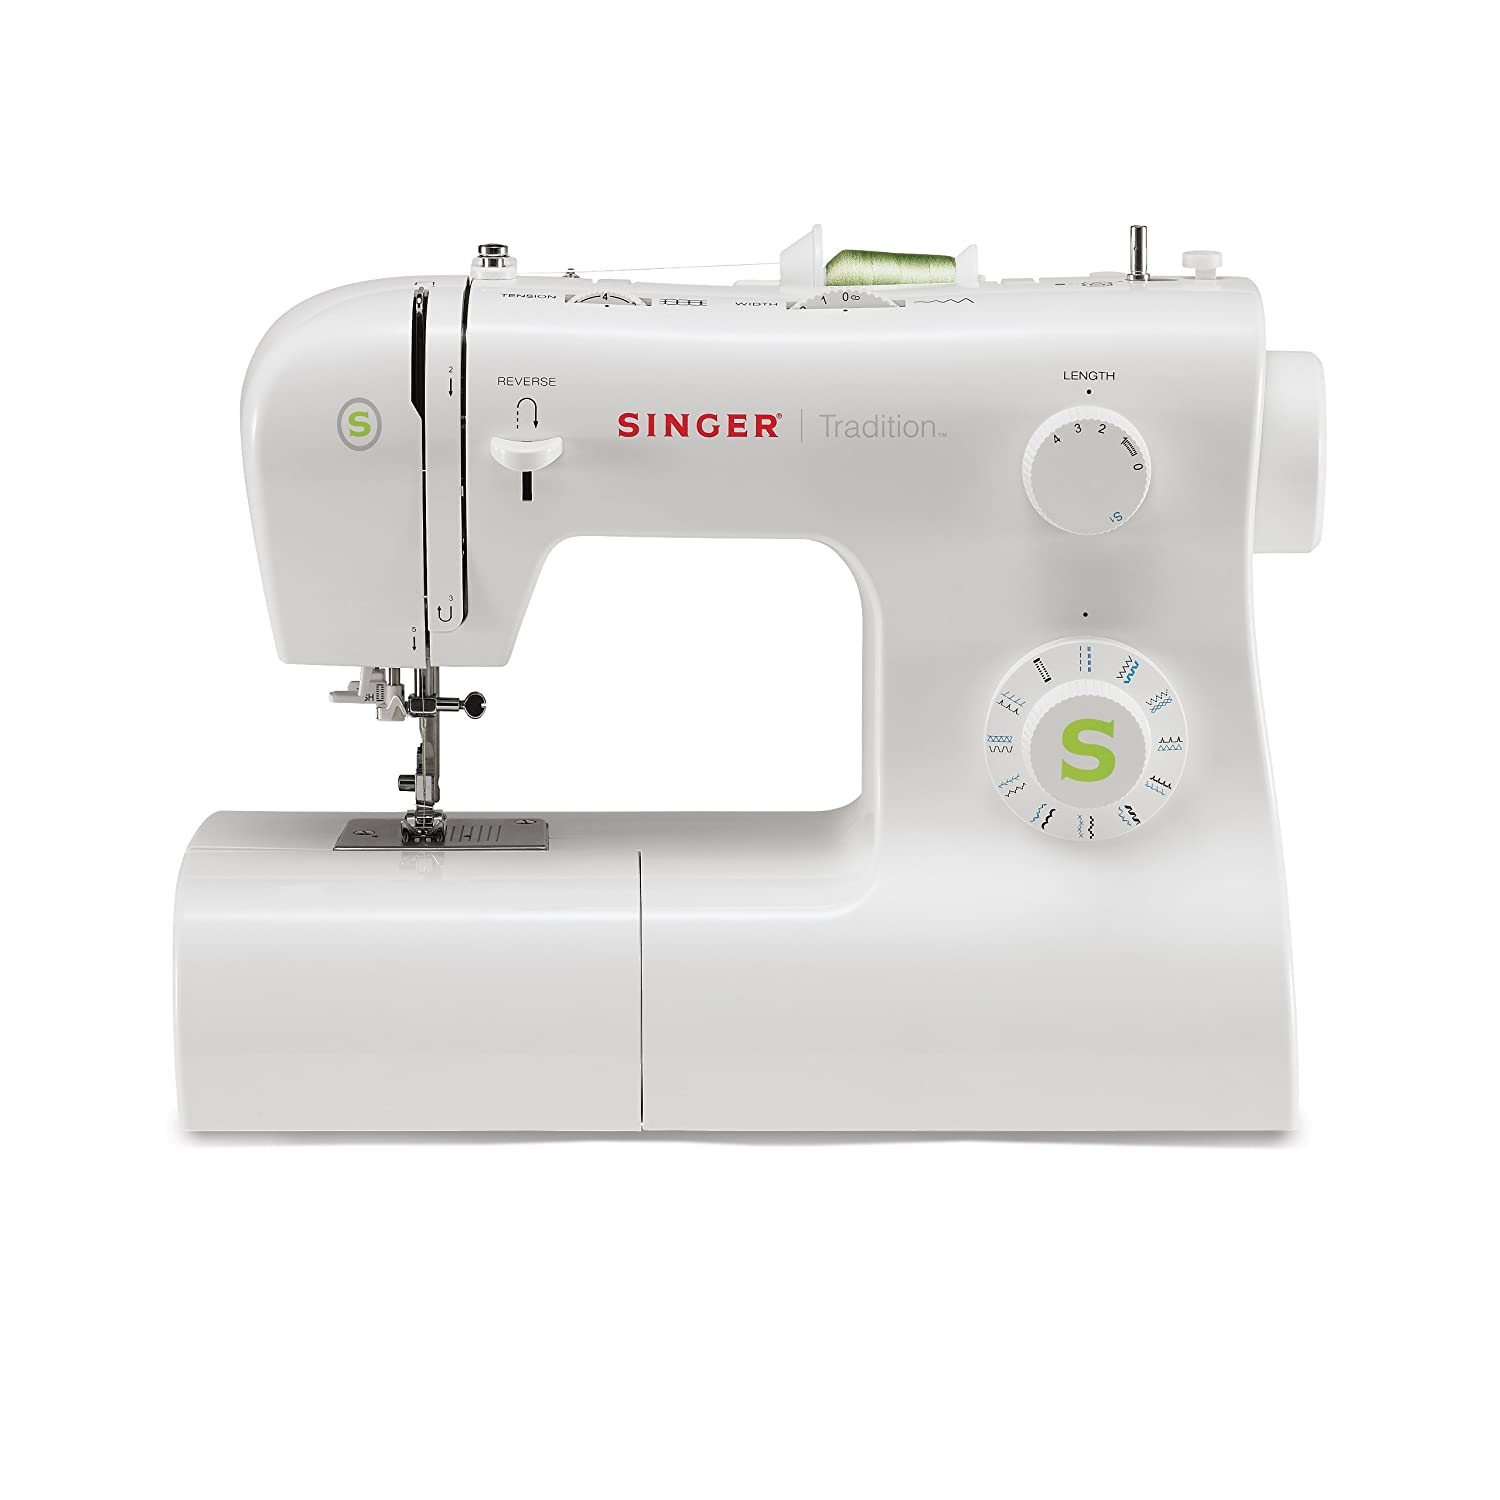 Top 9 Best Singer Sewing Machine Reviews in 2019 9